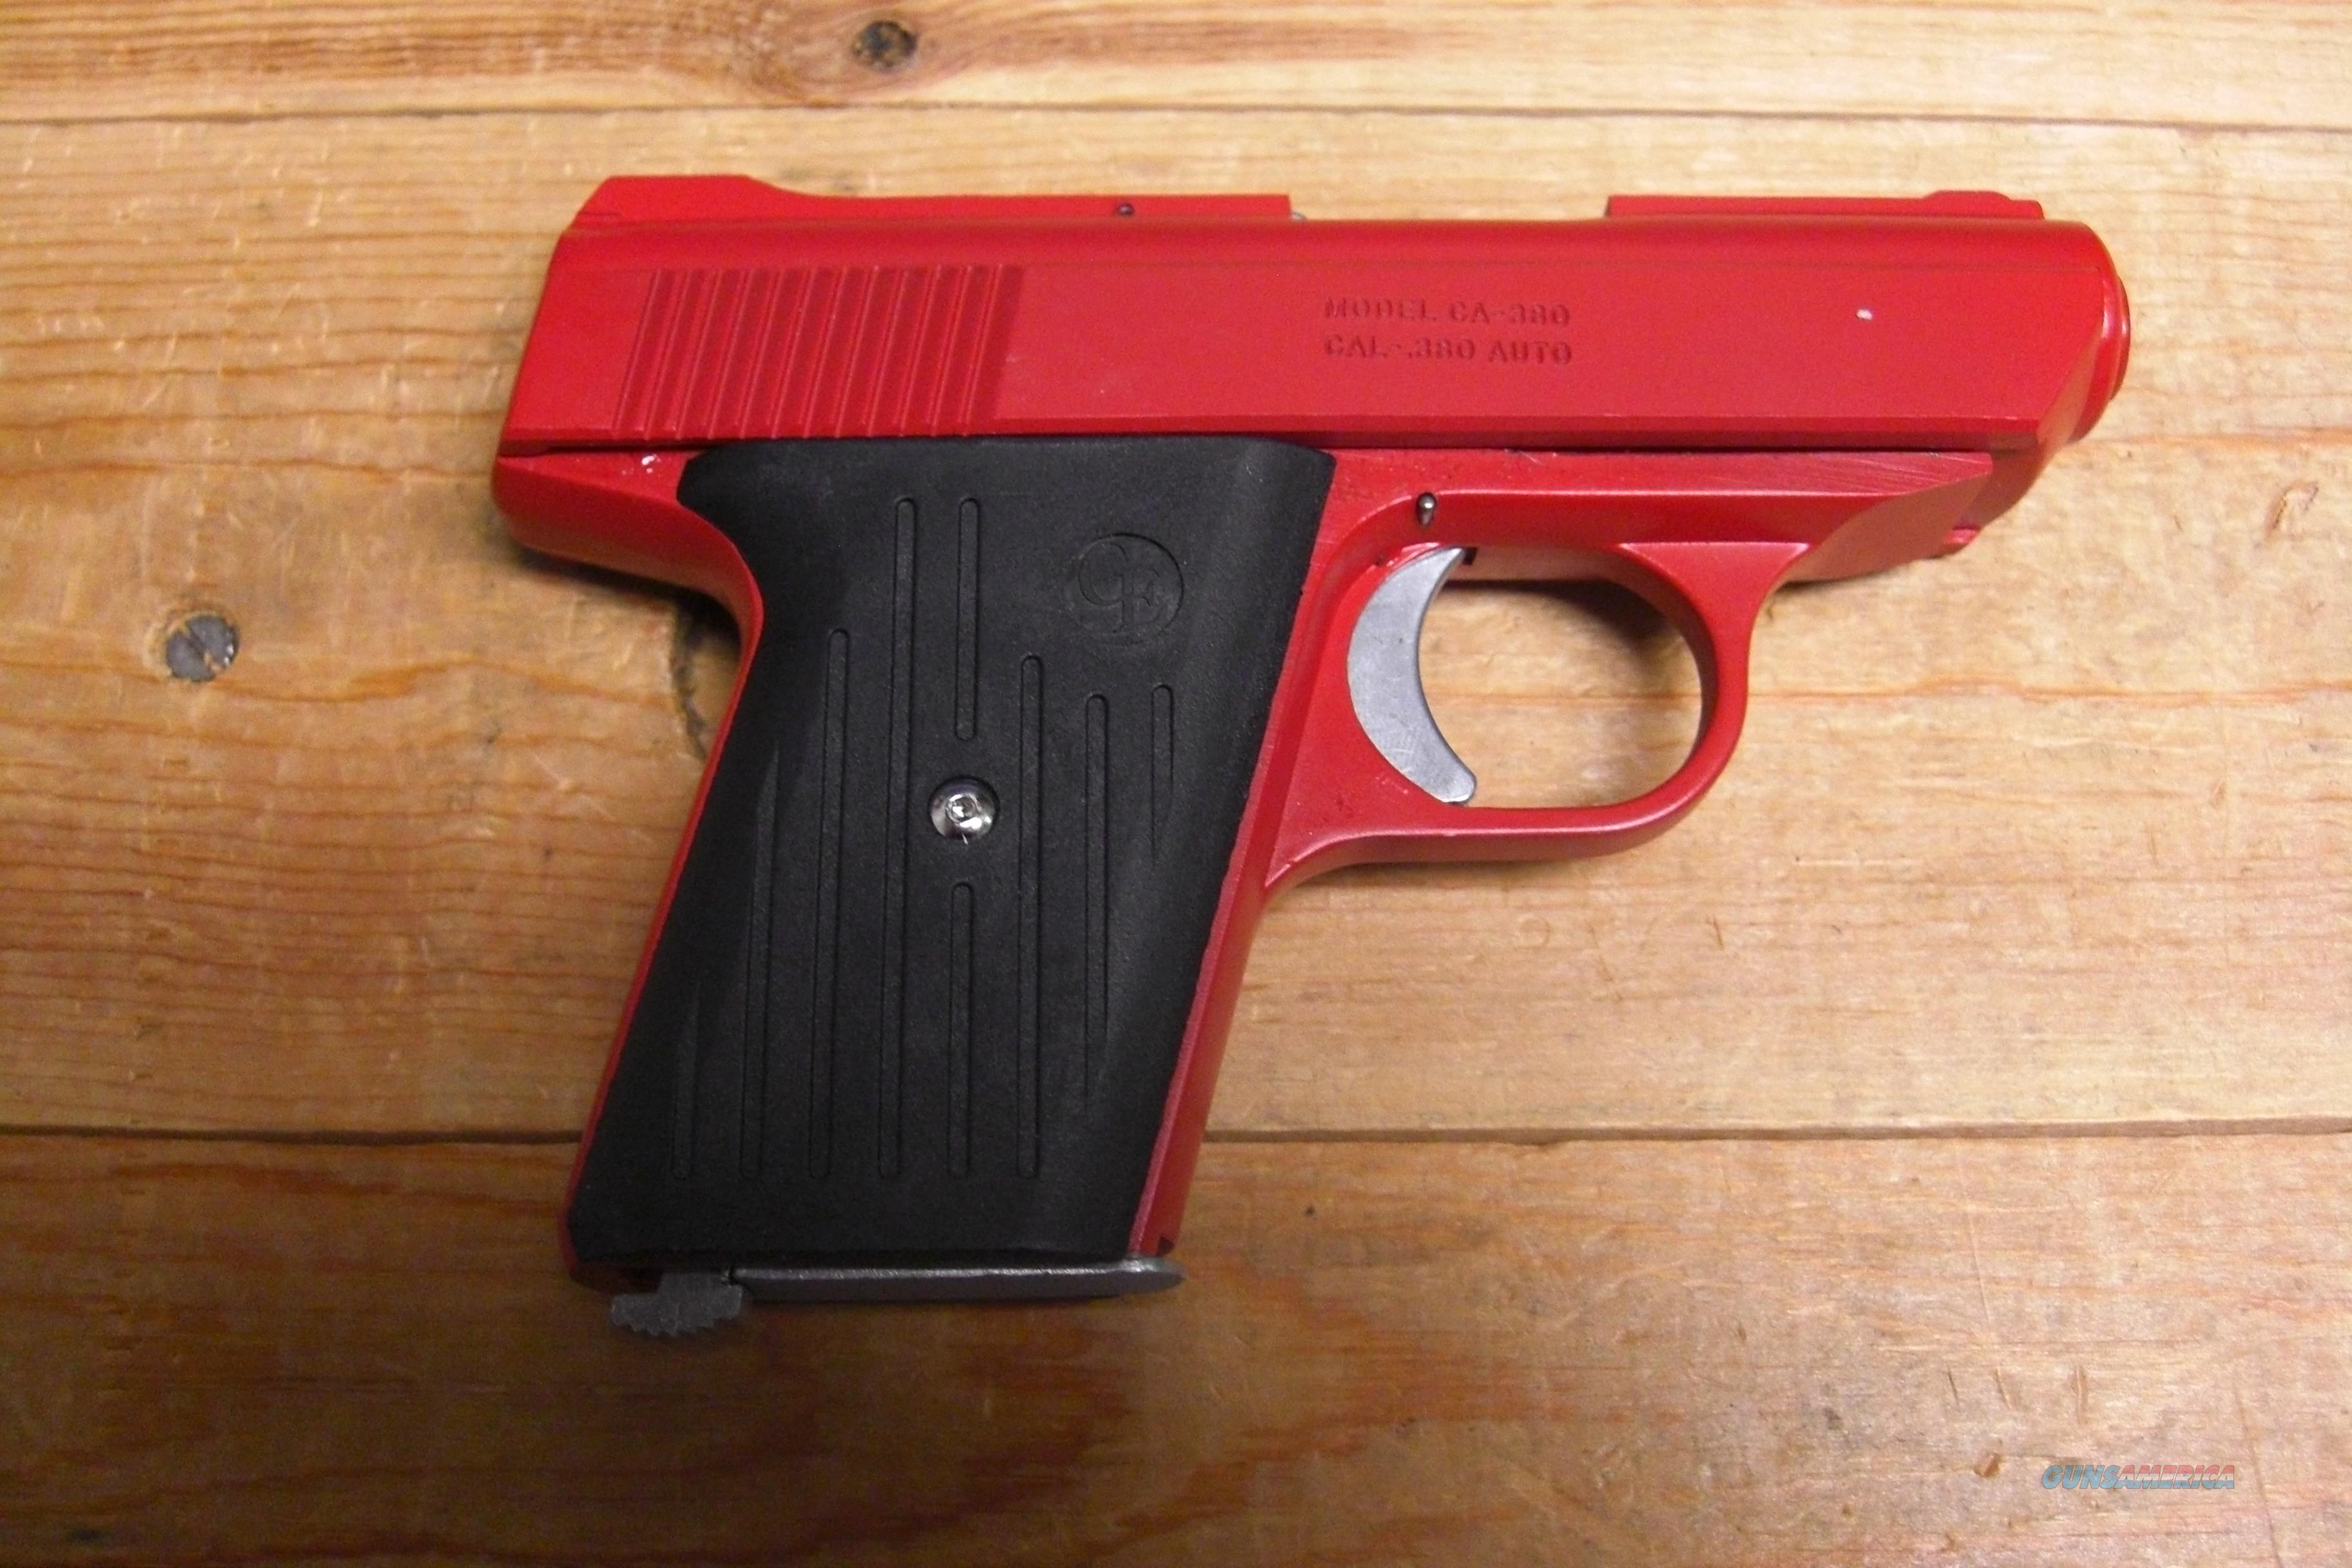 CA-380 w/all red finish  Guns > Pistols > Cobra Derringers